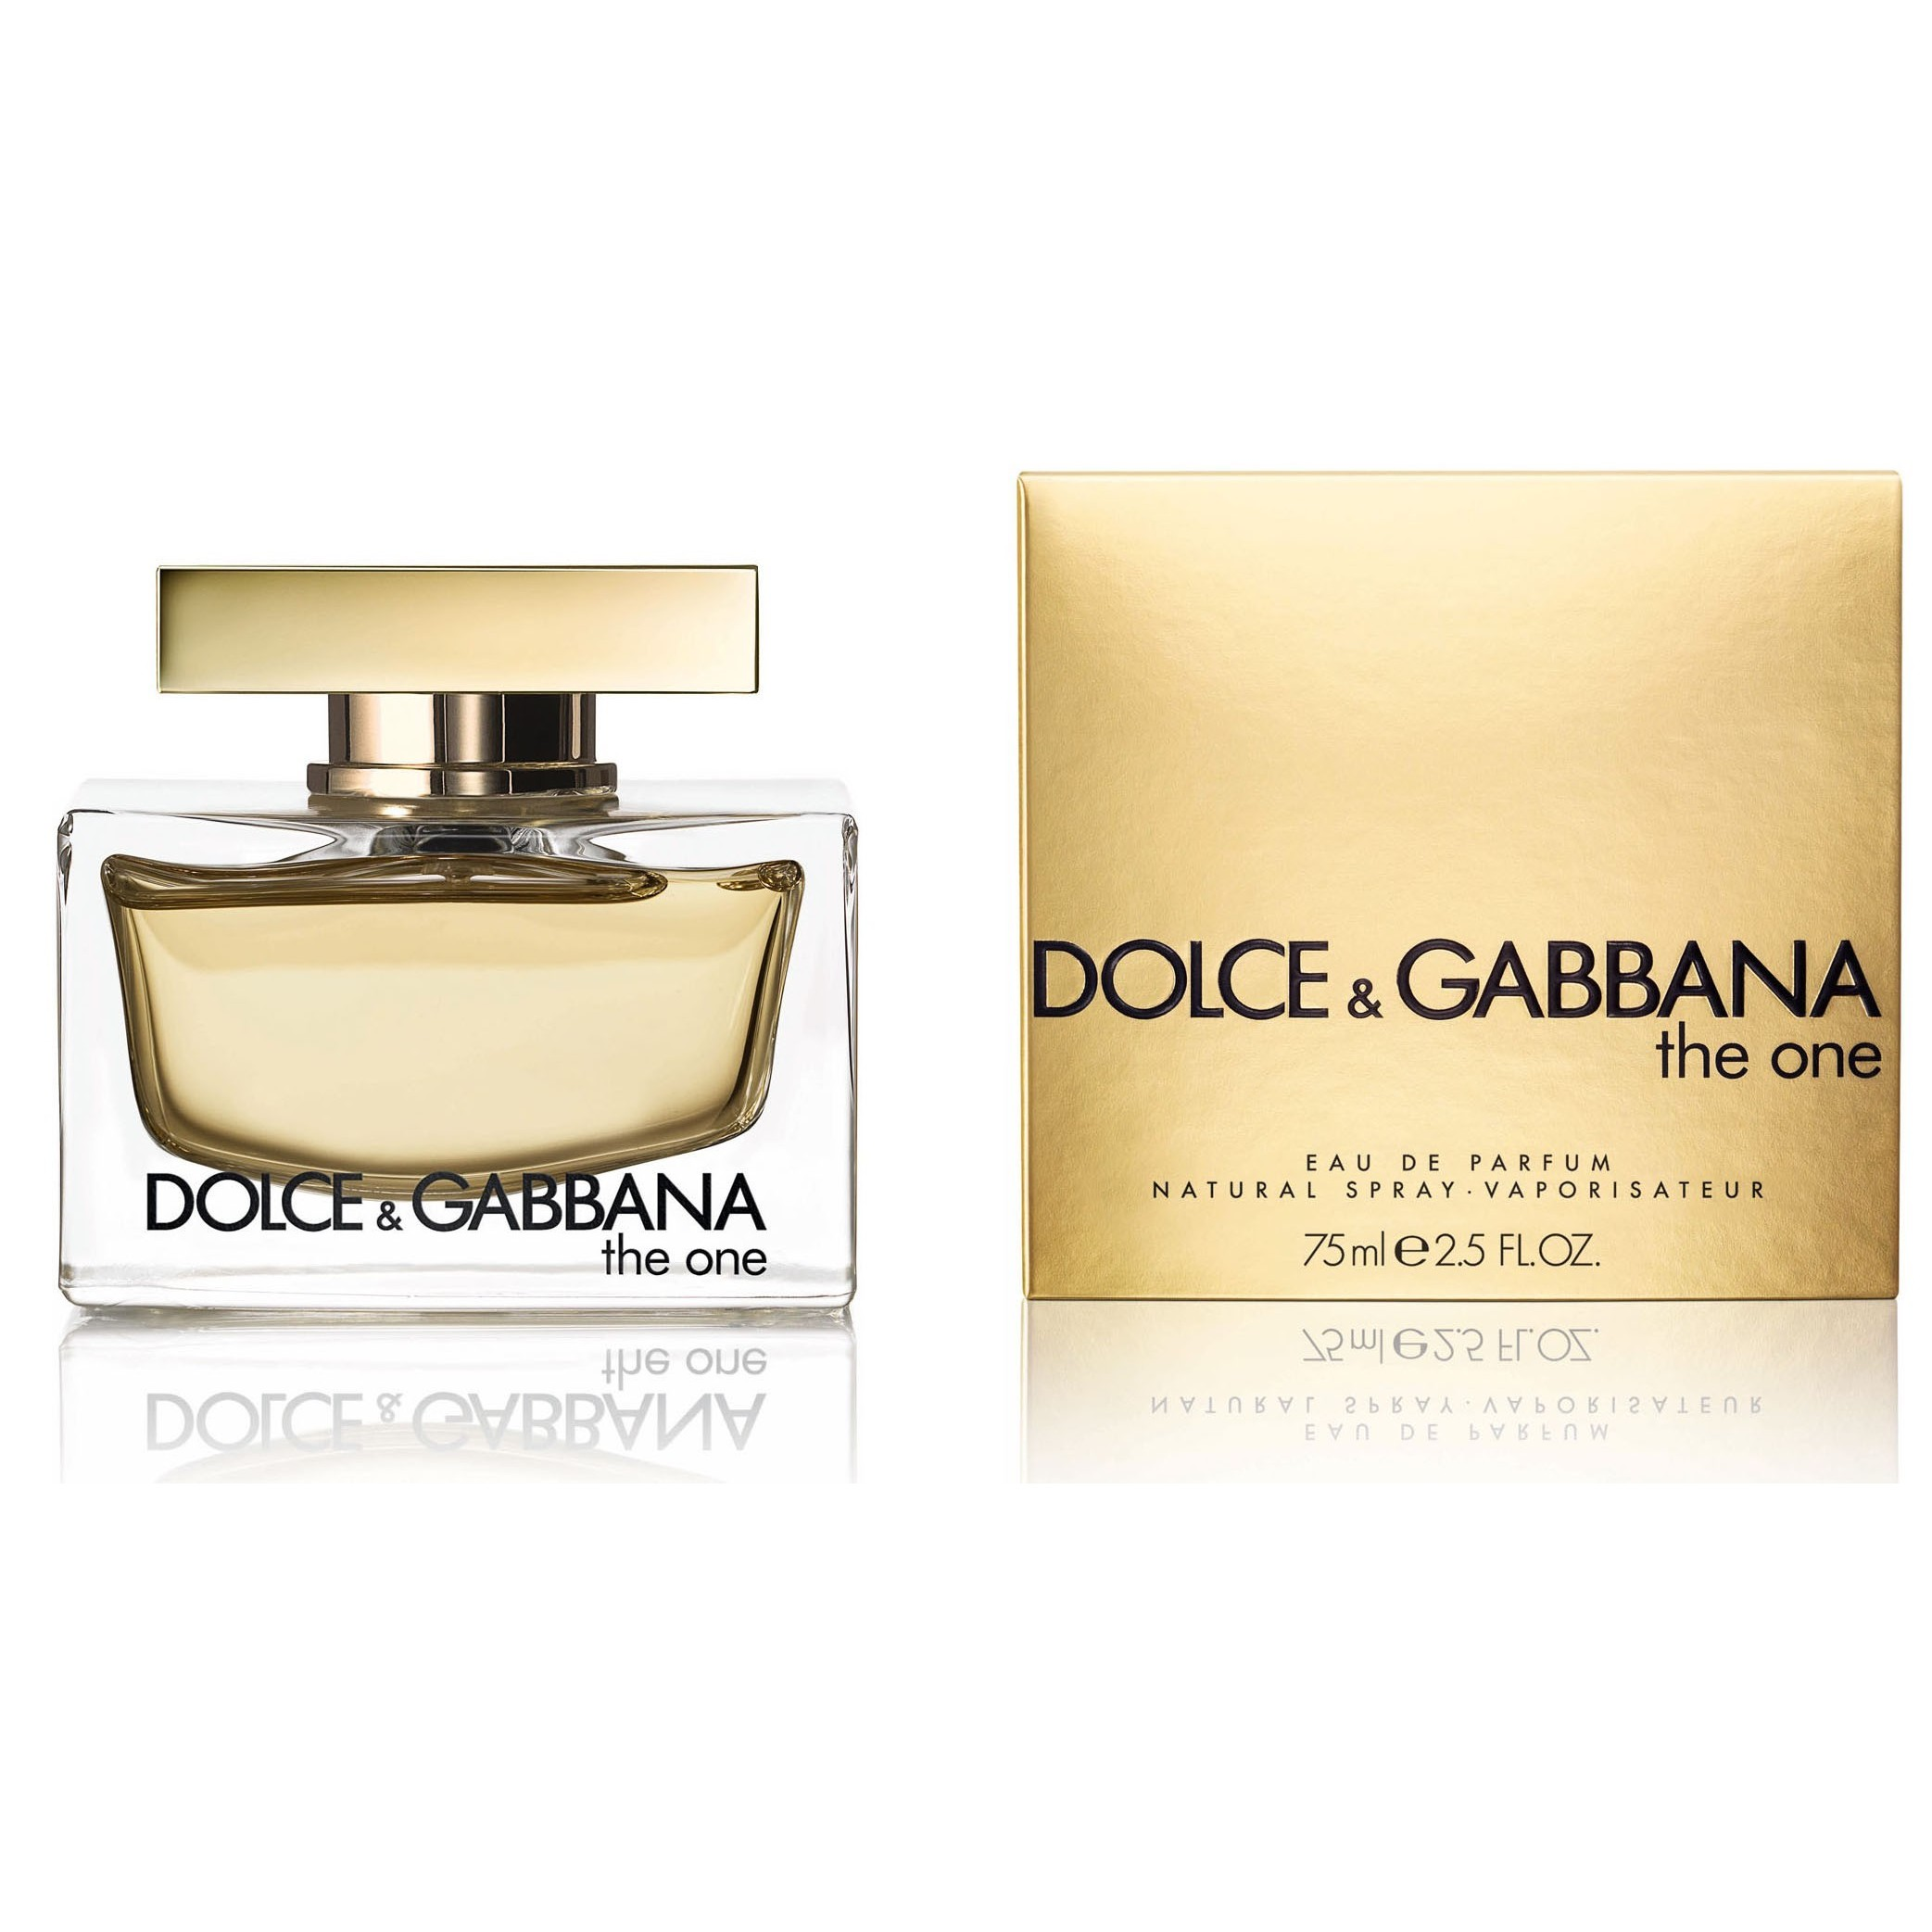 48648dc595aa1 Dolce   Gabbana - Dolce   Gabbana The One Perfume For Women Spray 2.5 Oz -  Walmart.com